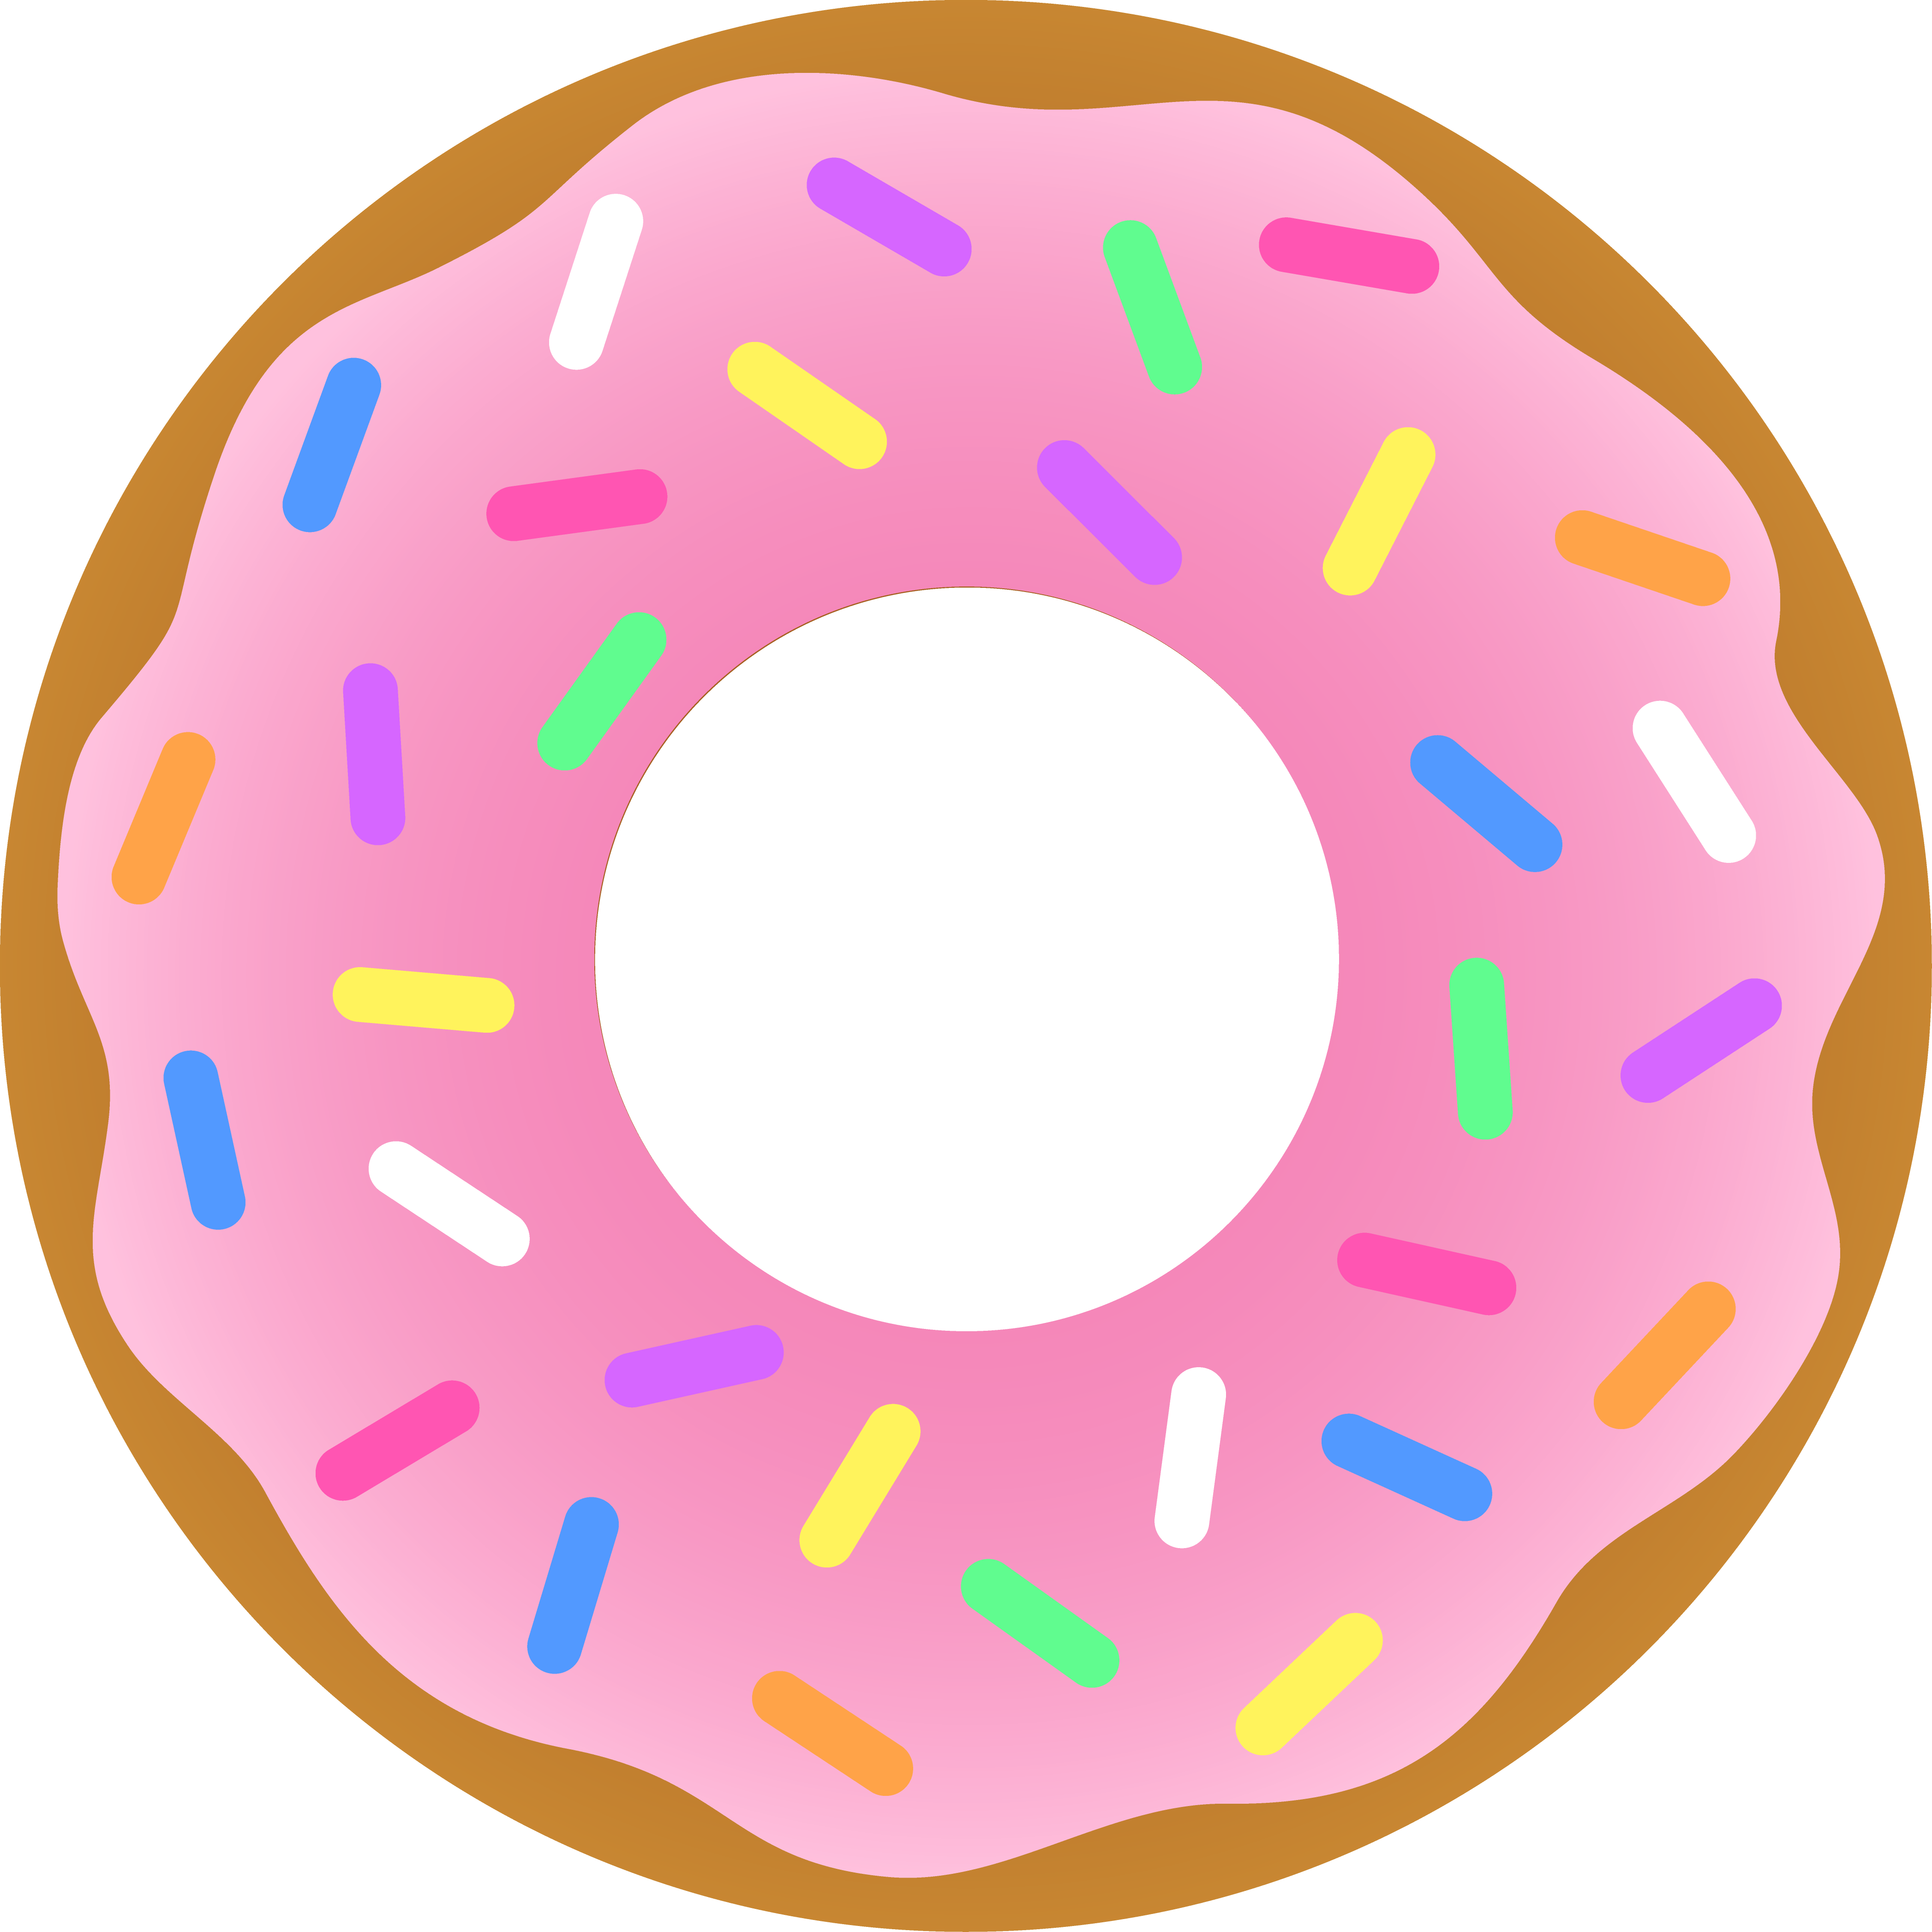 Drawn dougnut Clipart Donuts Free Clipart Coffee